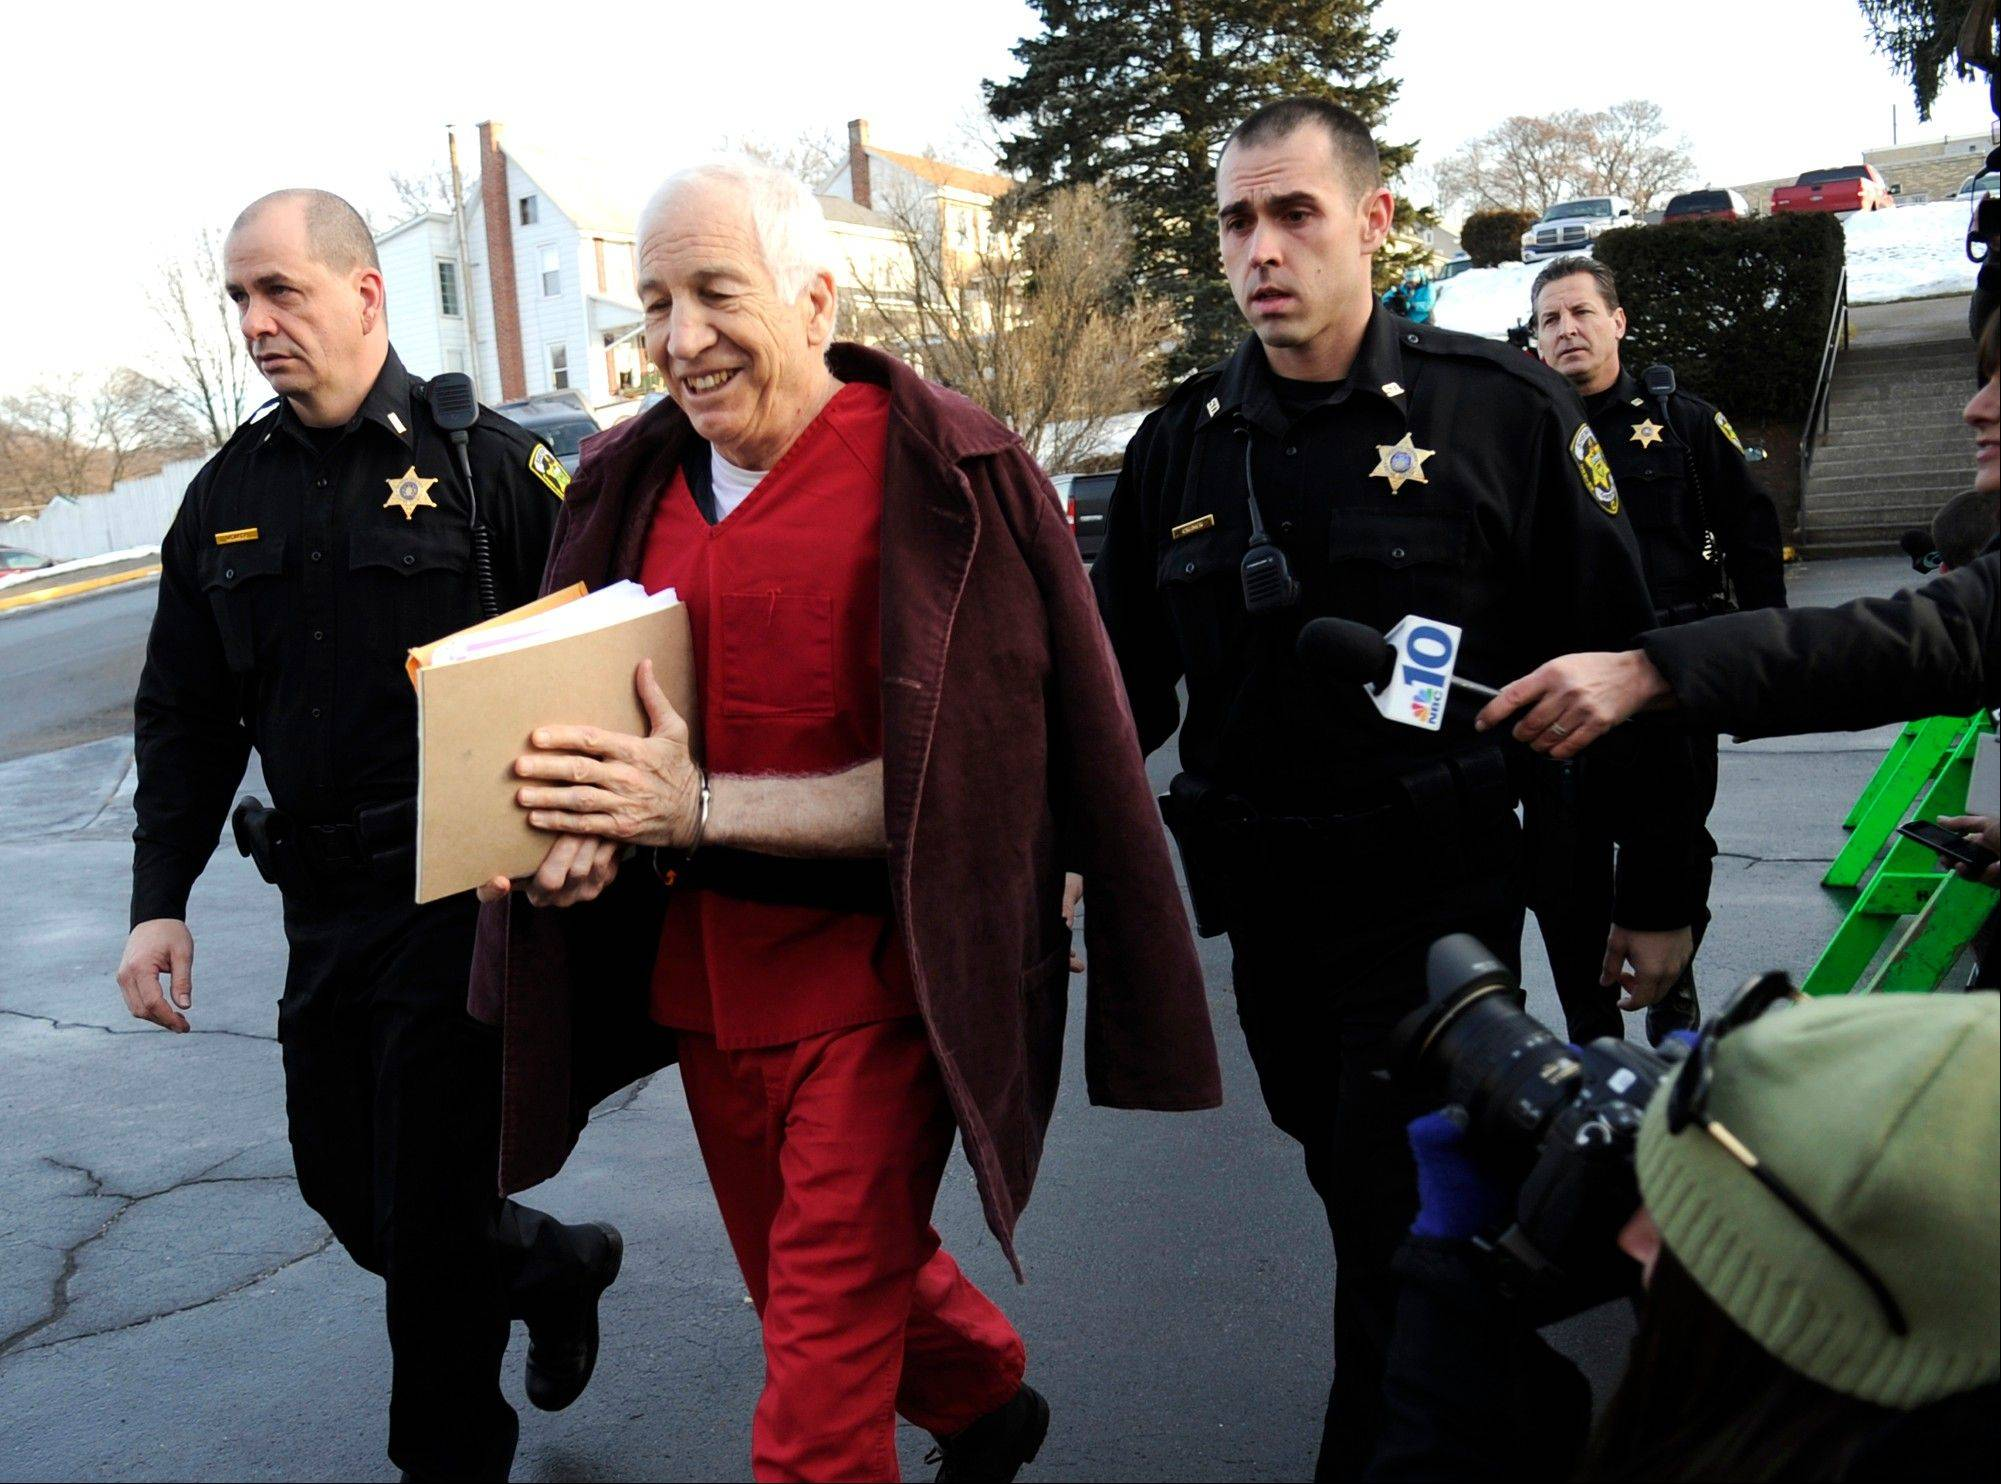 Former Penn State University assistant football coach Jerry Sandusky, center, arrives at the Centre County Courthouse for a post-sentence motion in Bellefonte, Pa., Thursday, Jan. 10, 2013. The hearing is expected to delve into the legal challenges filed by Sandusky�s lawyers, including their claim that a deluge of prosecution materials swamped the defense. Sandusky is serving a 30- to 60-year prison sentence after being convicted in June of 45 counts of child sexual abuse.